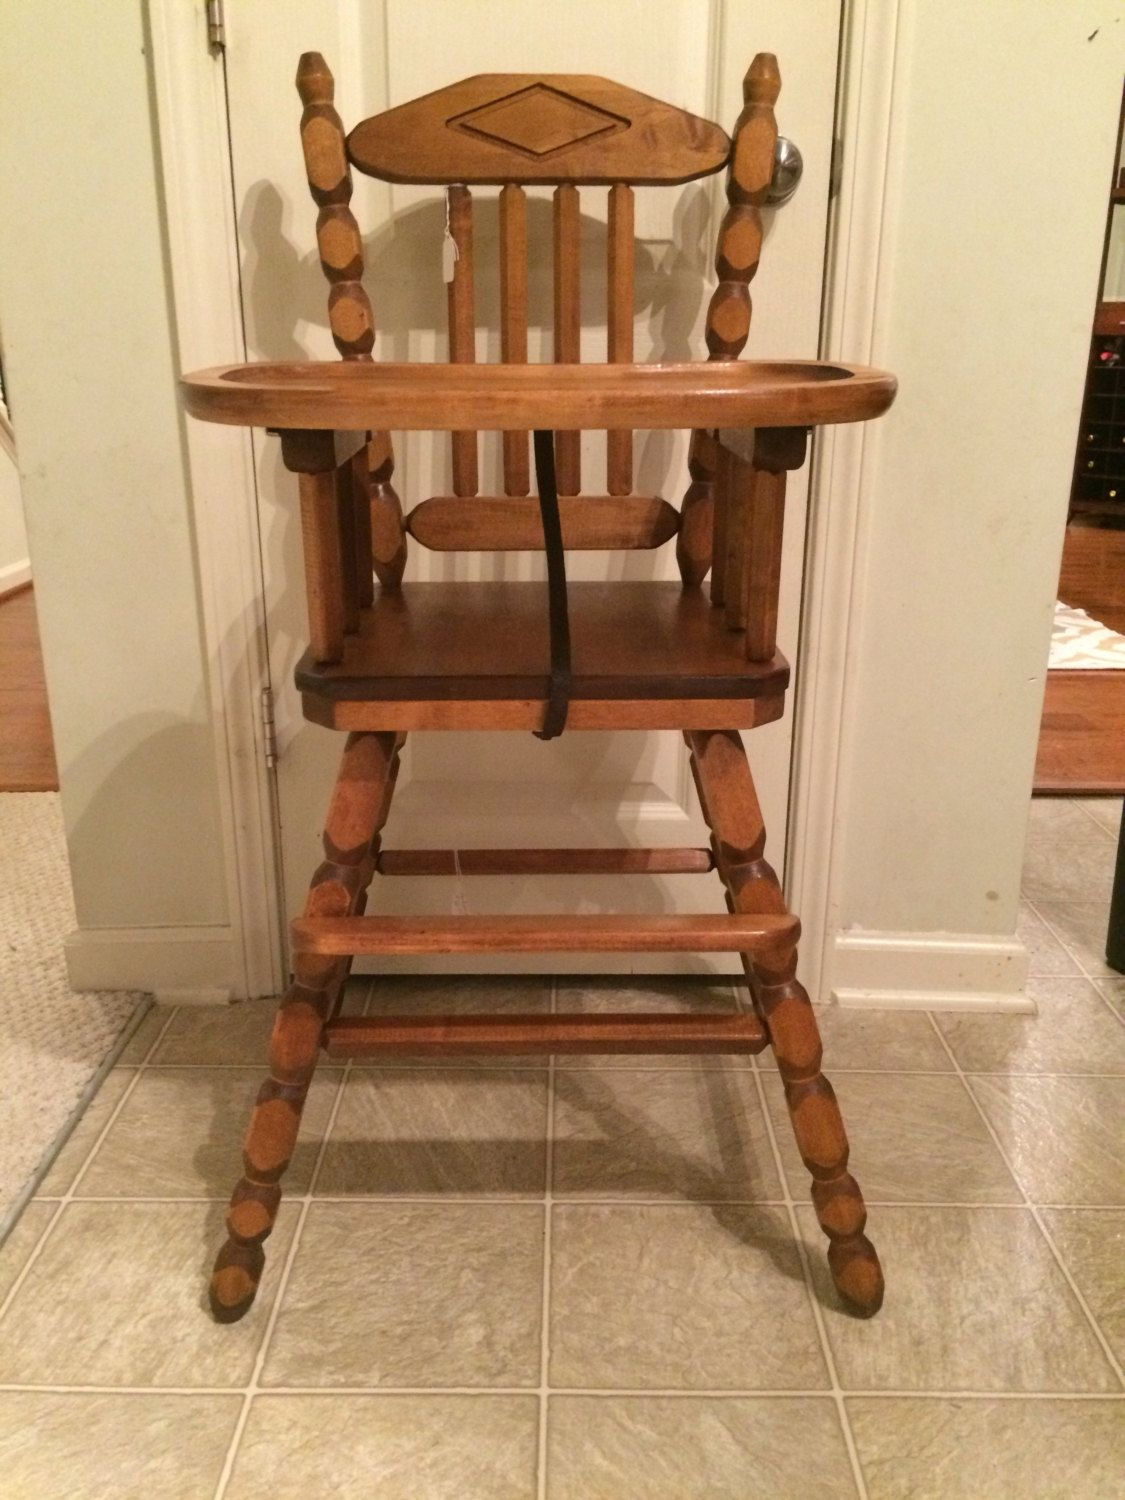 retro high chairs babies oval back dining chair slipcovers price reduced vintage wooden jenny lind